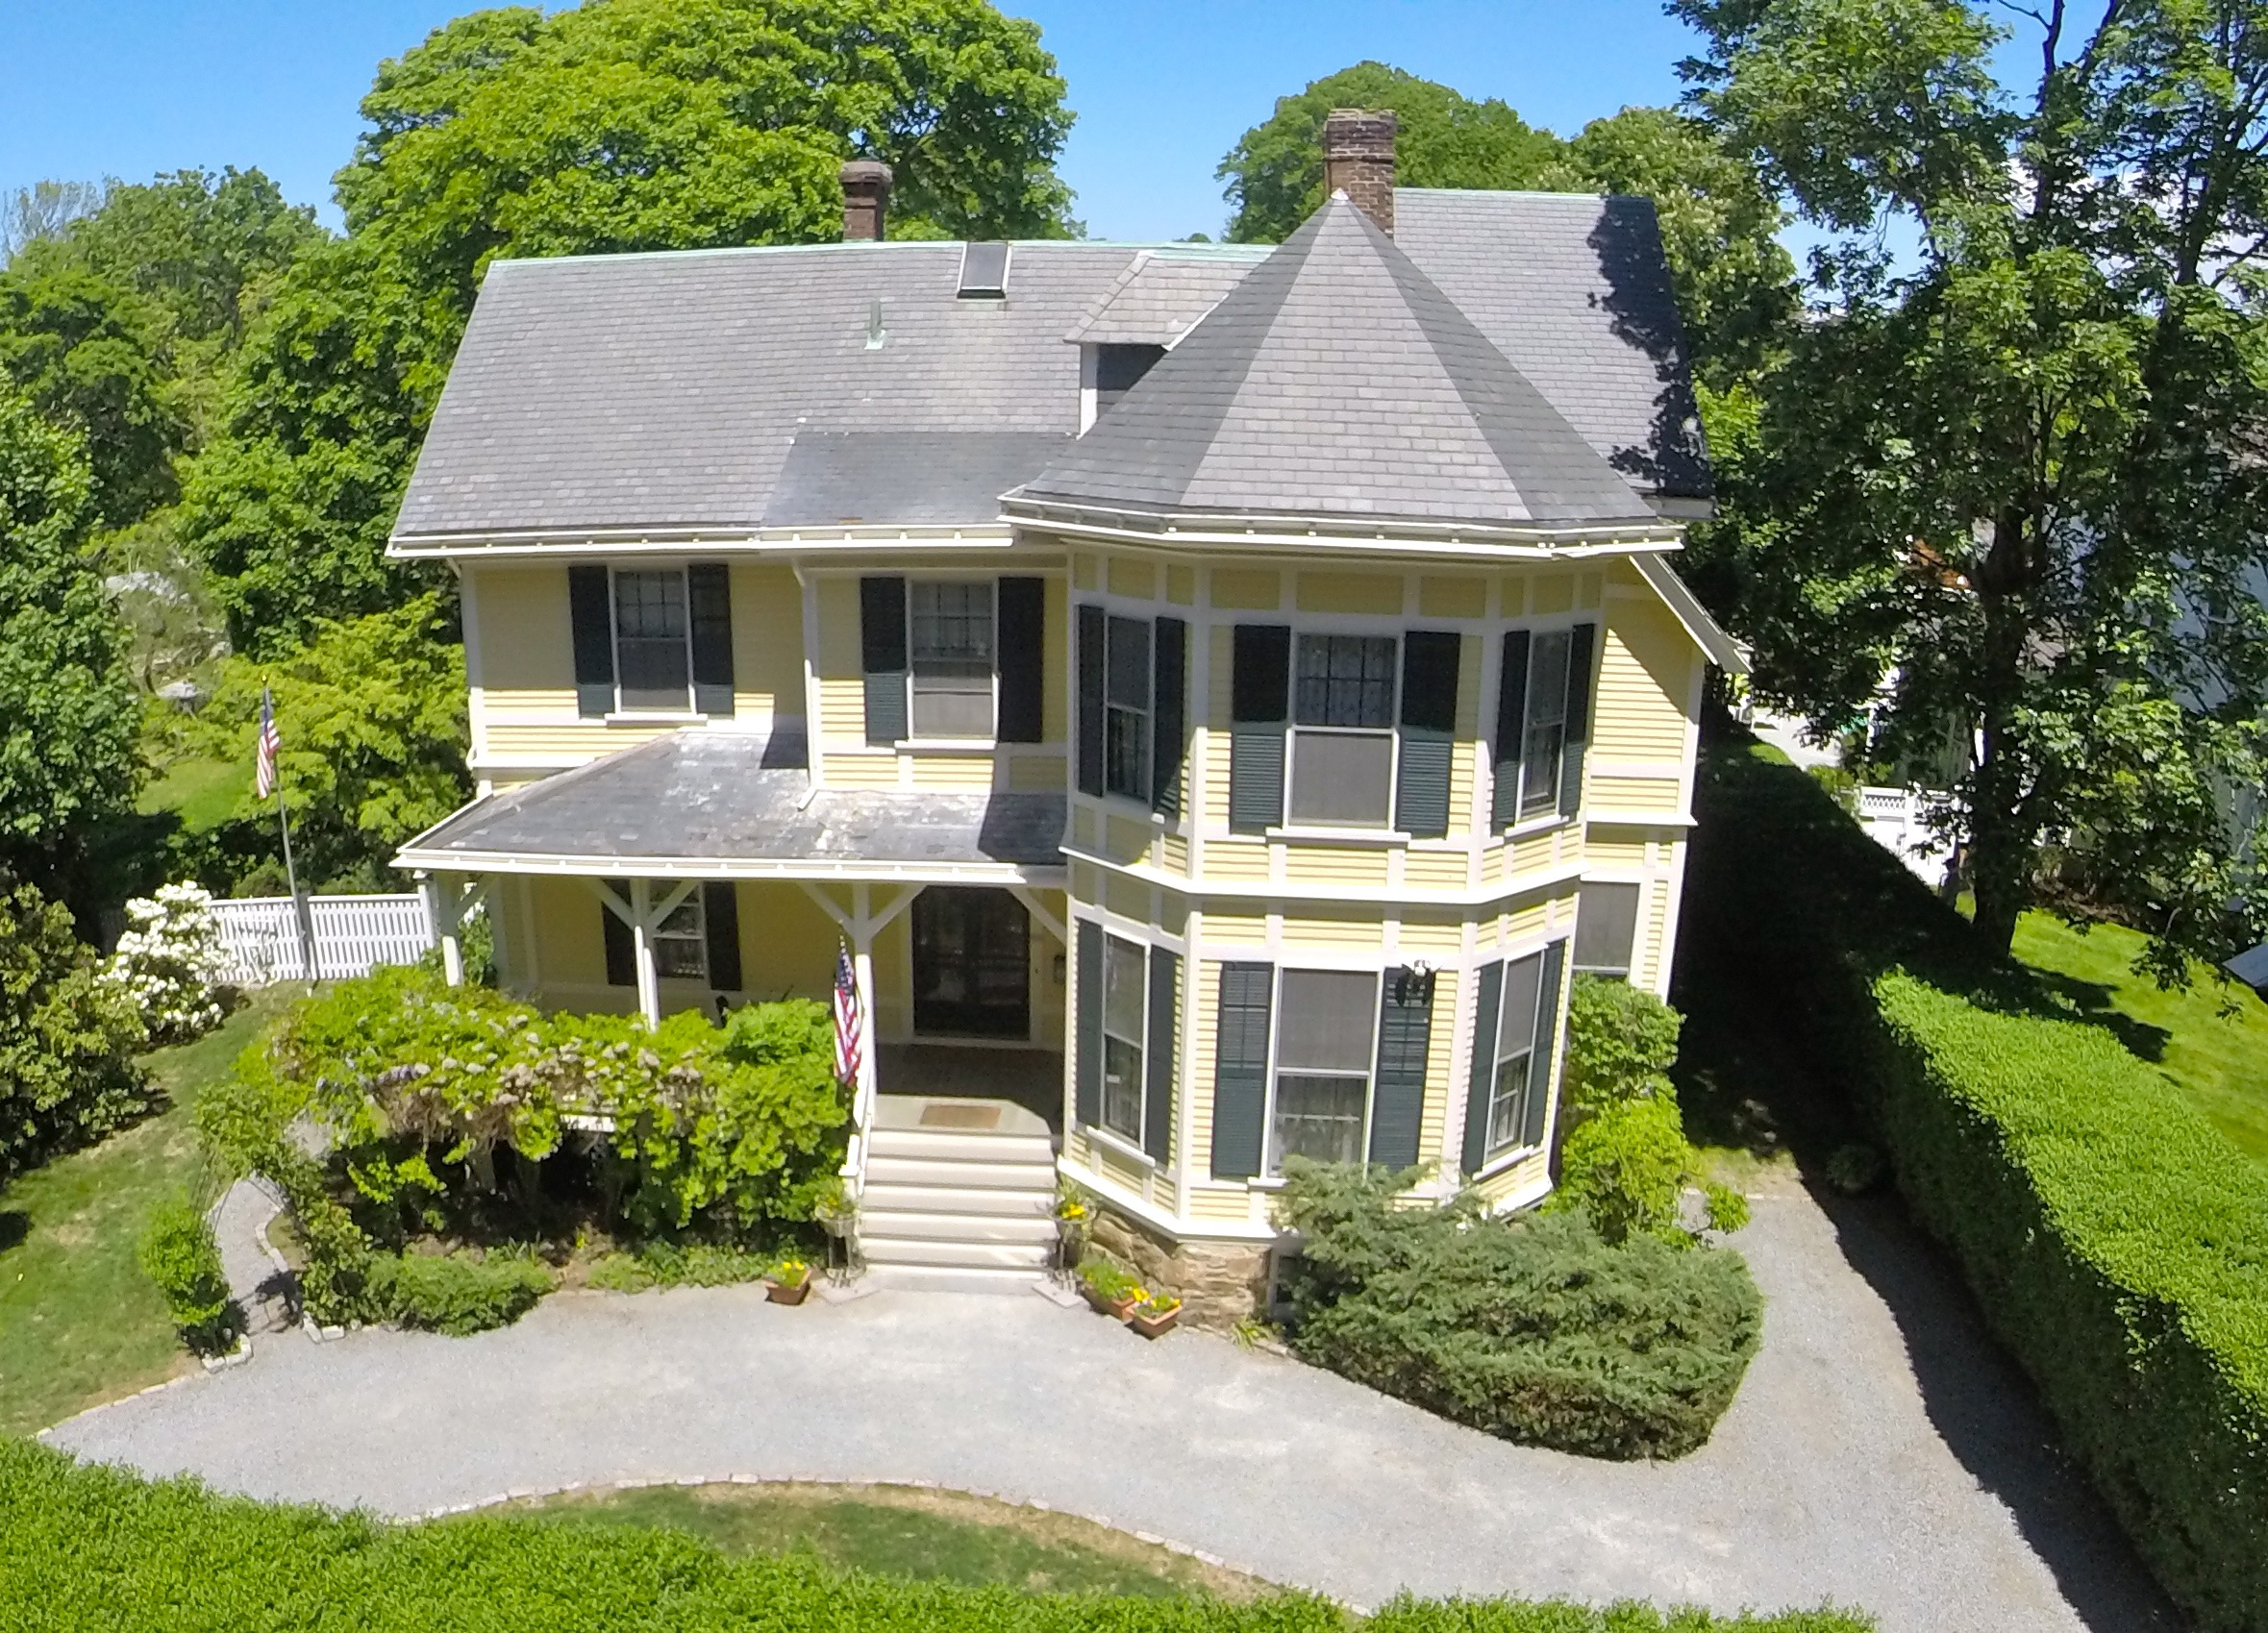 Single Family Home for Sale at Bellevue Court 3 Bellevue Court Newport, Rhode Island 02840 United States